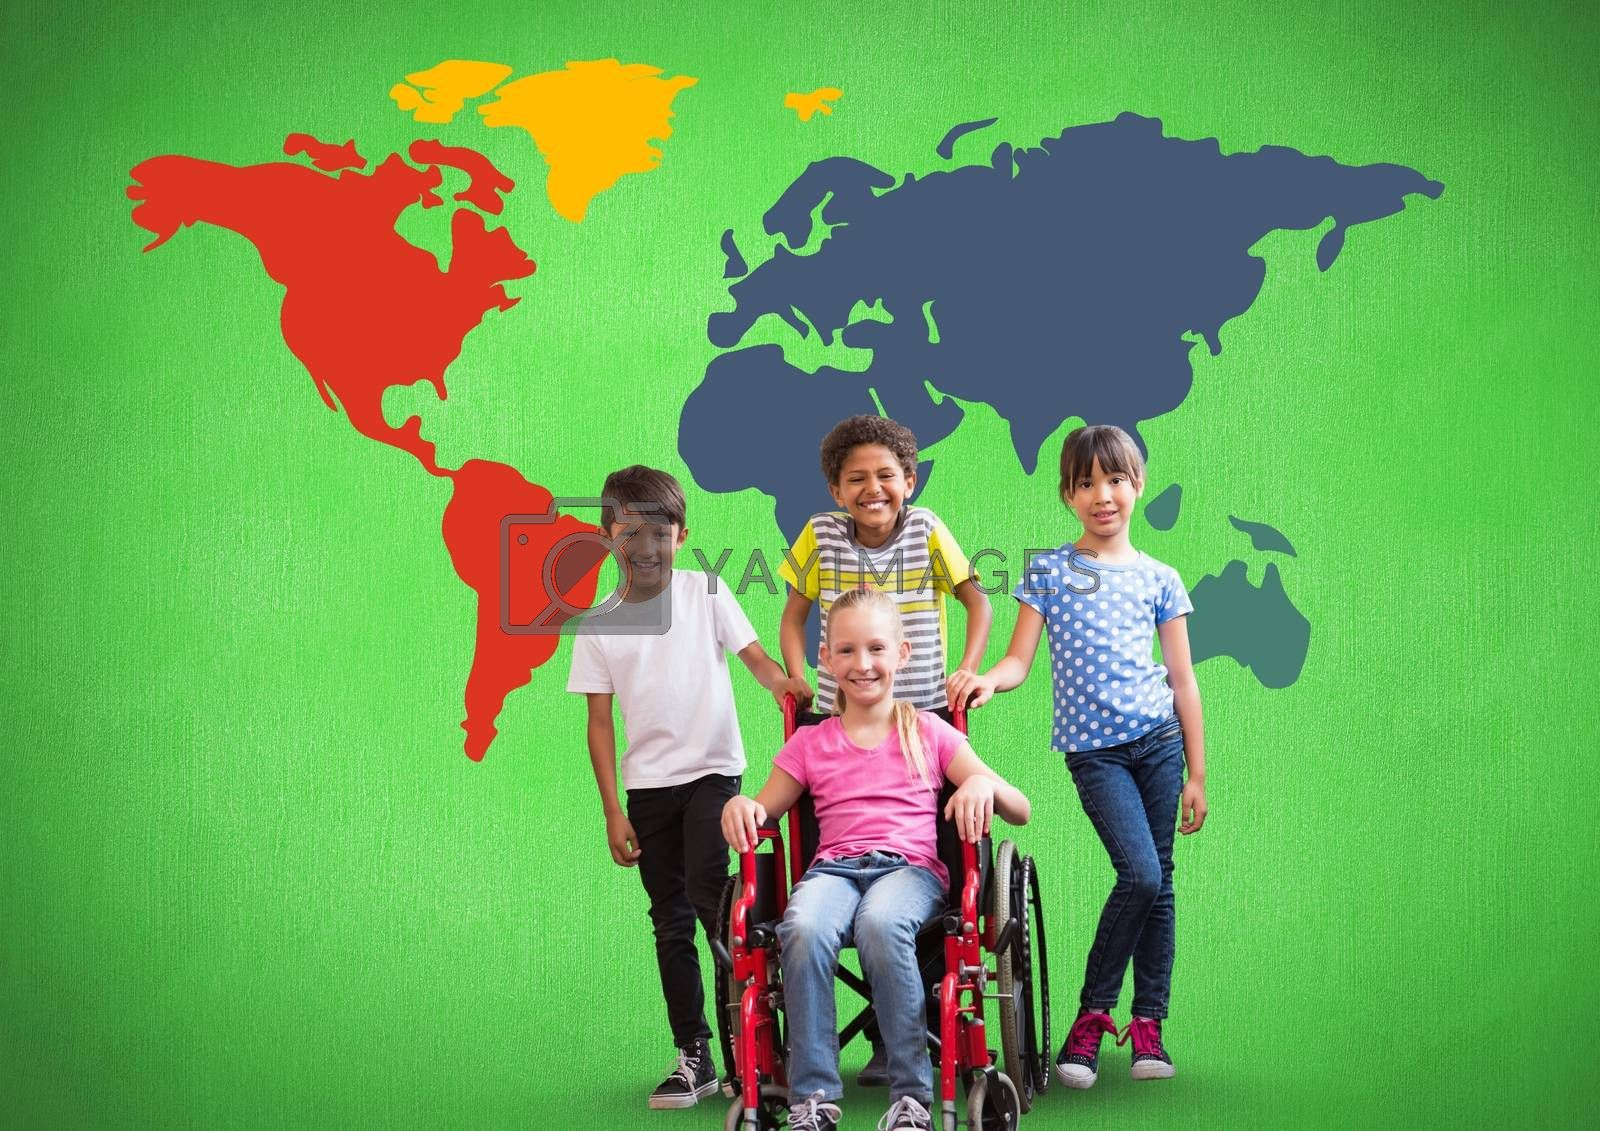 Disabled girl in wheelchair with friends in front of colorful world map by Wavebreakmedia